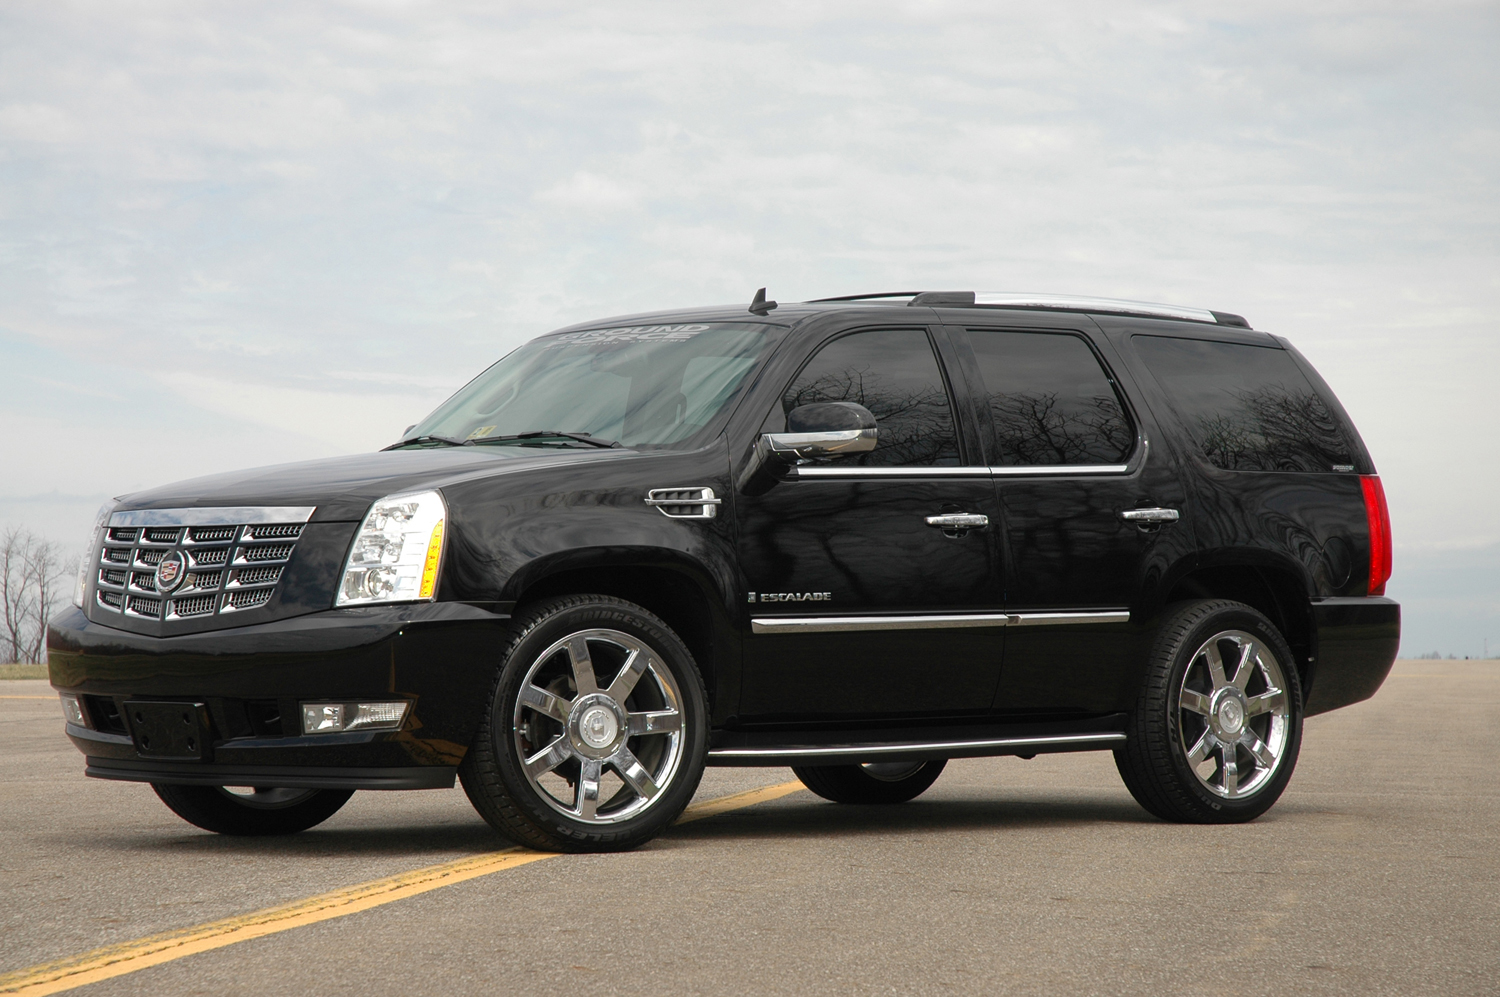 2008 cadillac escalade pictures cargurus. Black Bedroom Furniture Sets. Home Design Ideas